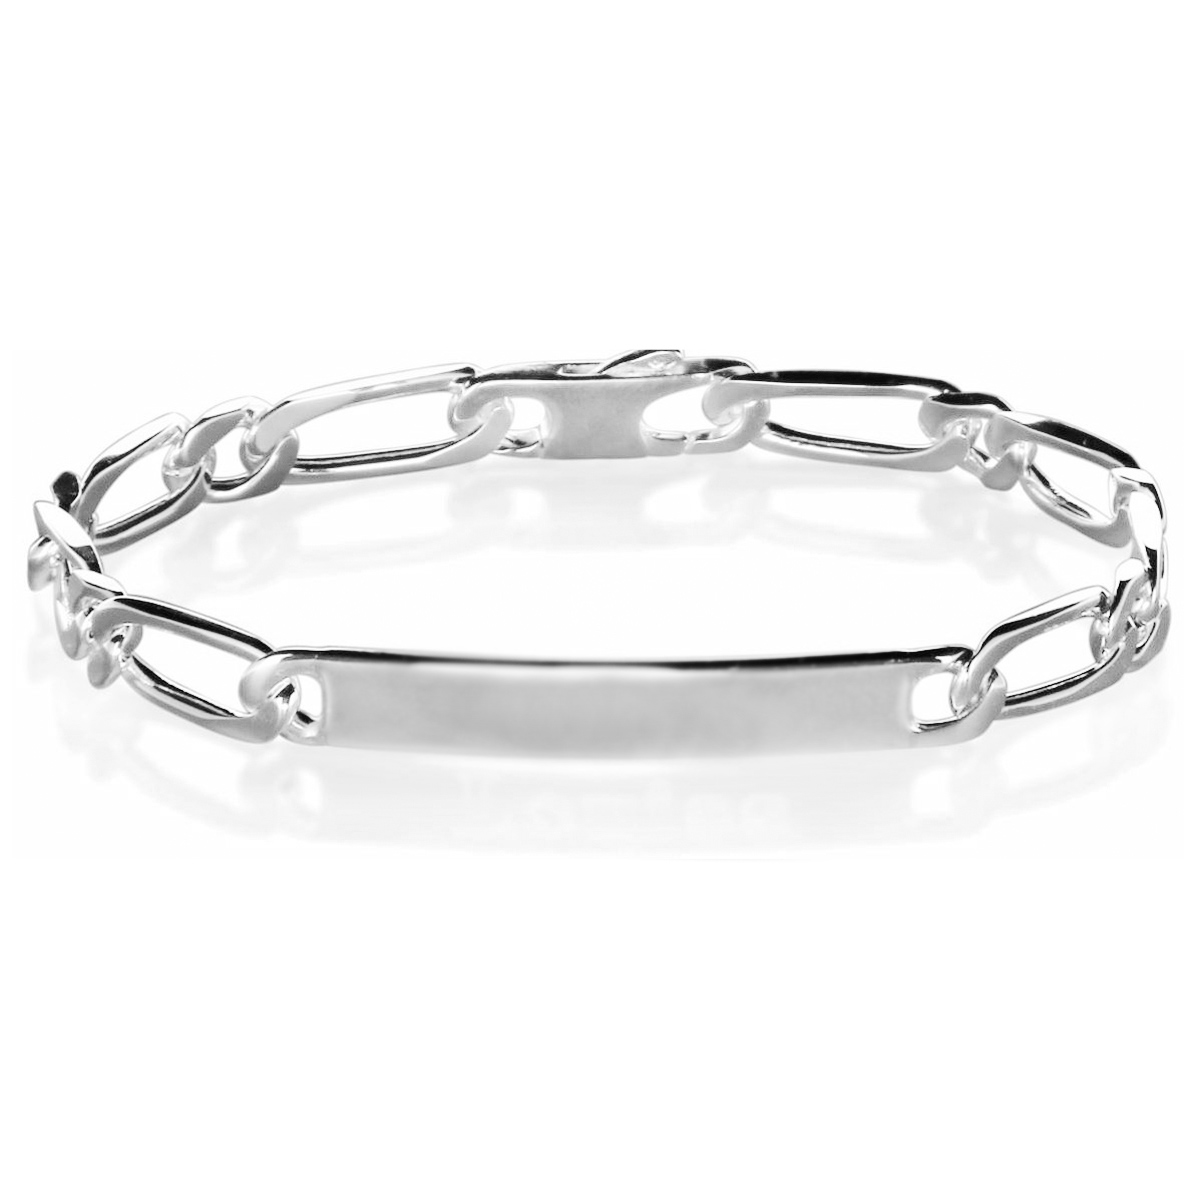 Gourmette femme argent 5 mm maille 1+1 - ADA